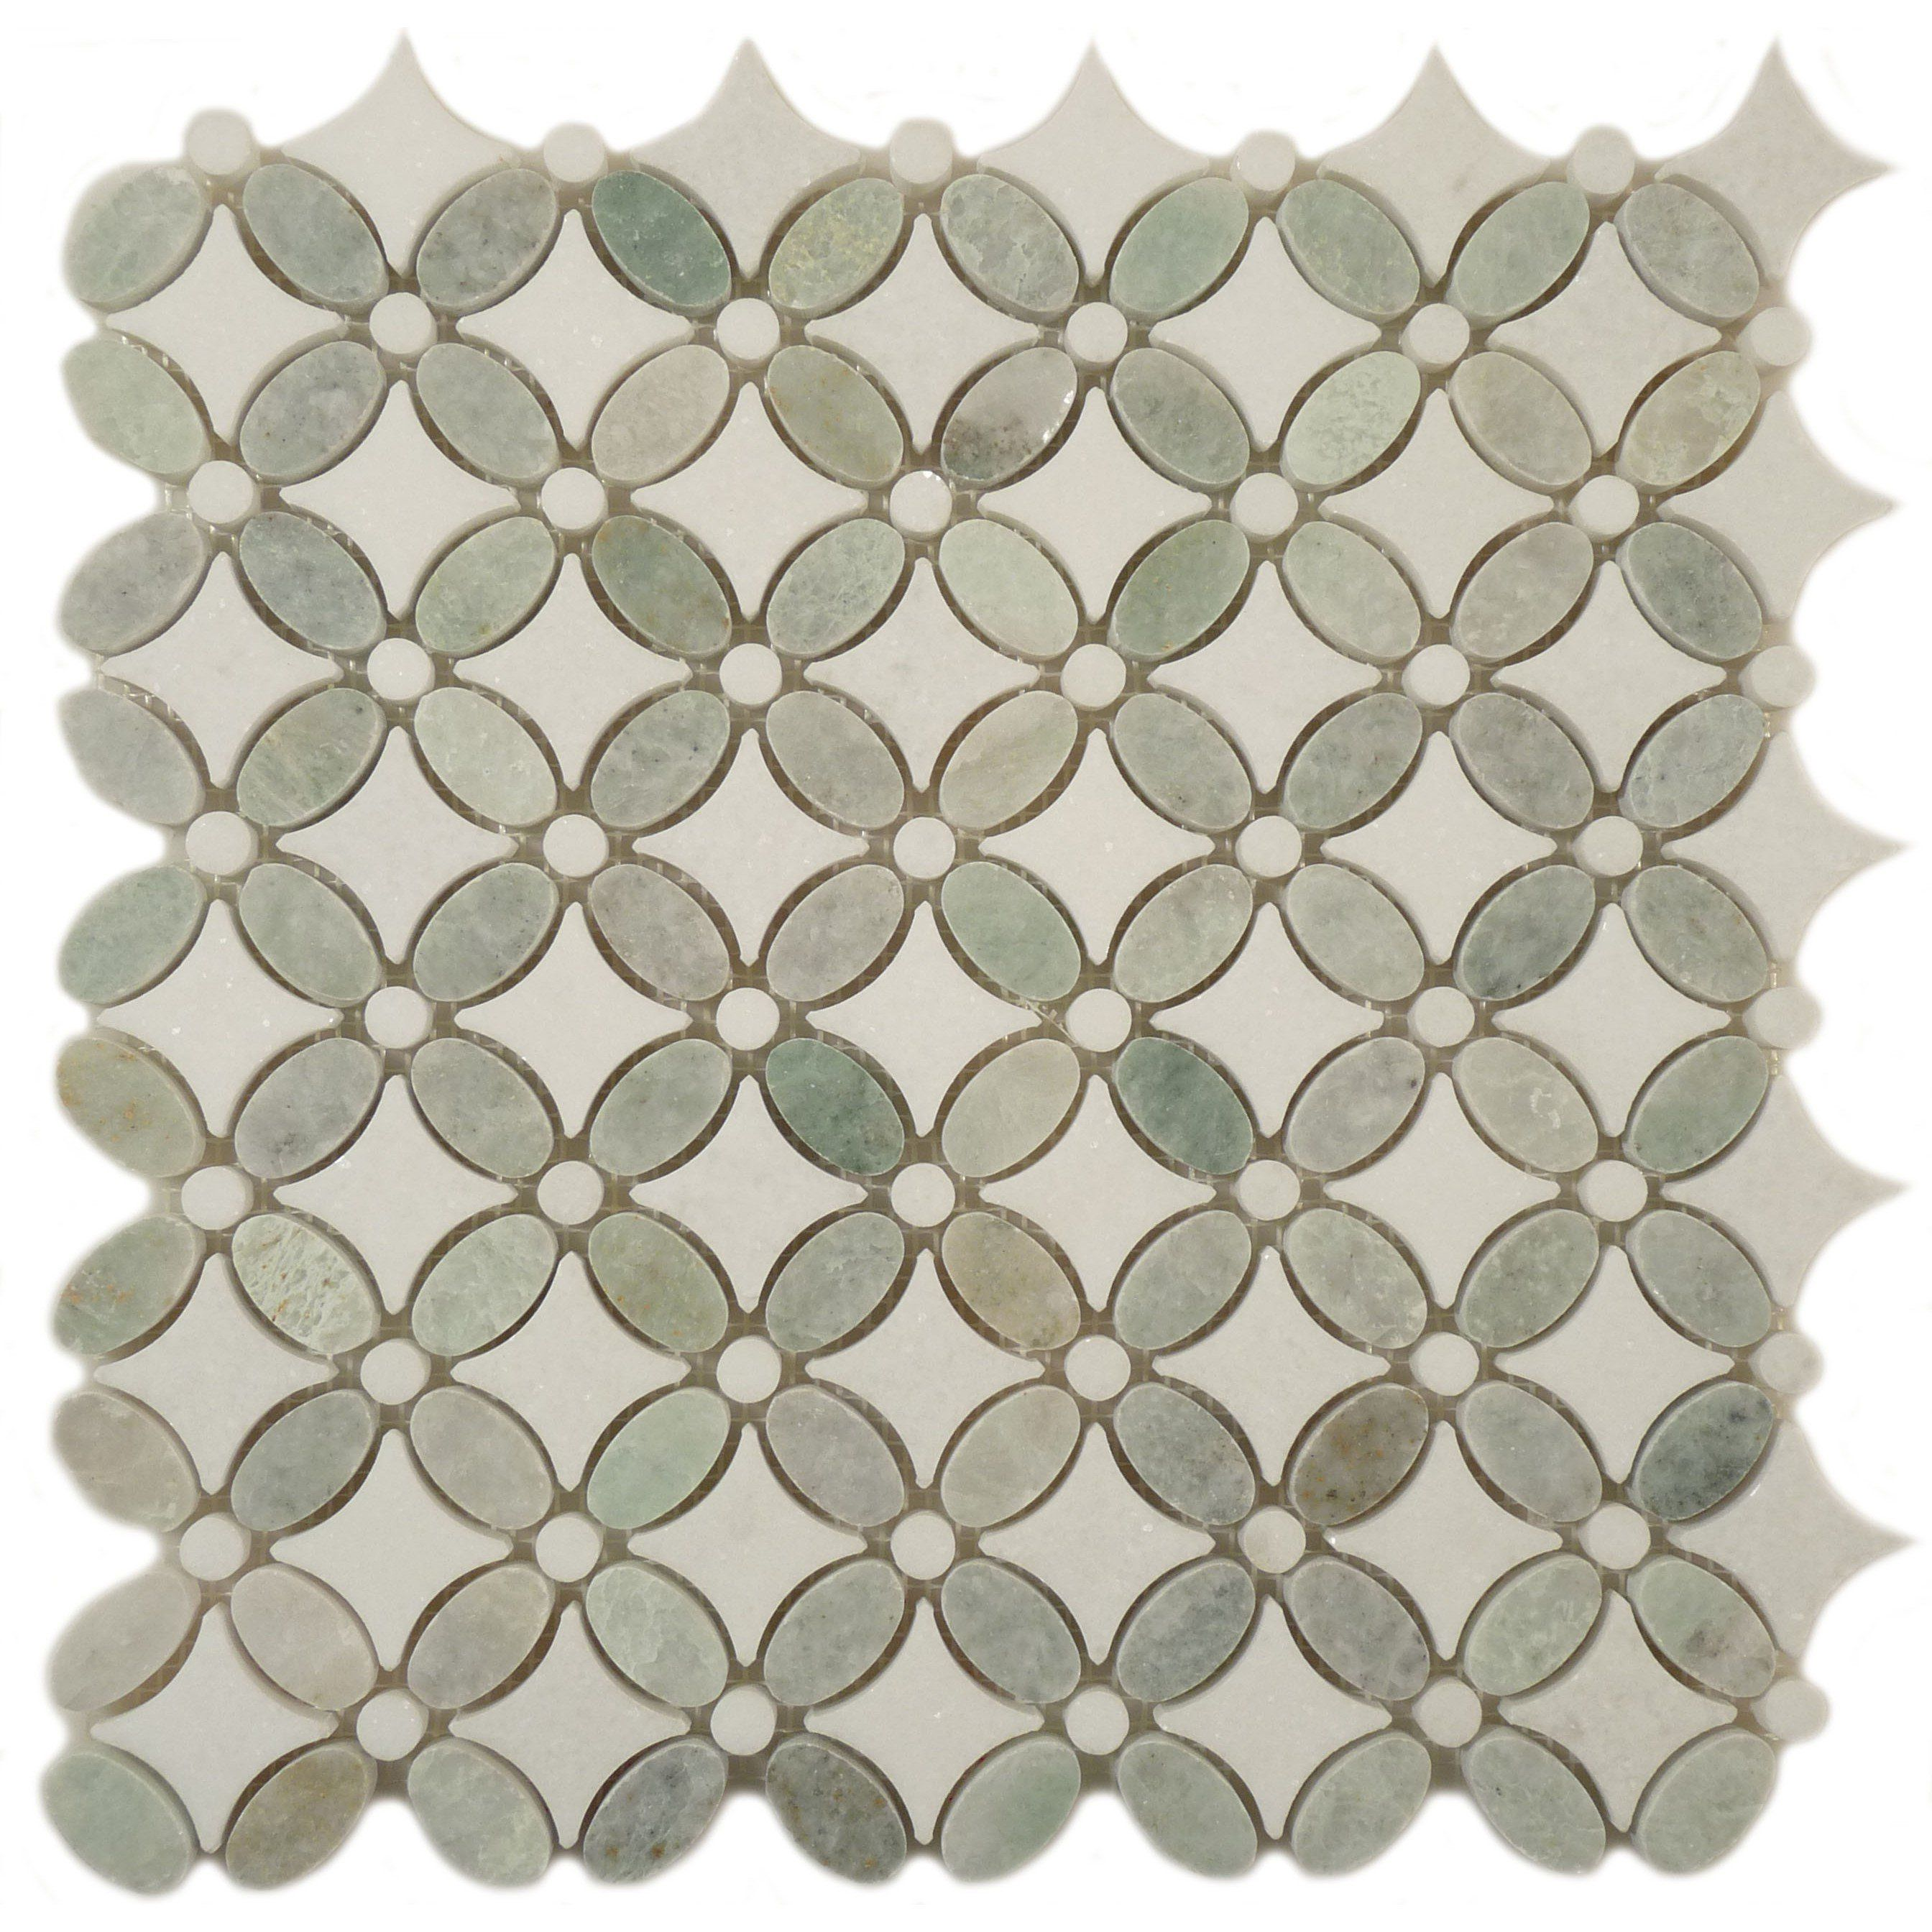 Sheet Size 13 X Tile Shape Flower Tiles Per 192 Thickness Grout Joints Mount Mesh Backed Stone Have Natural Variations